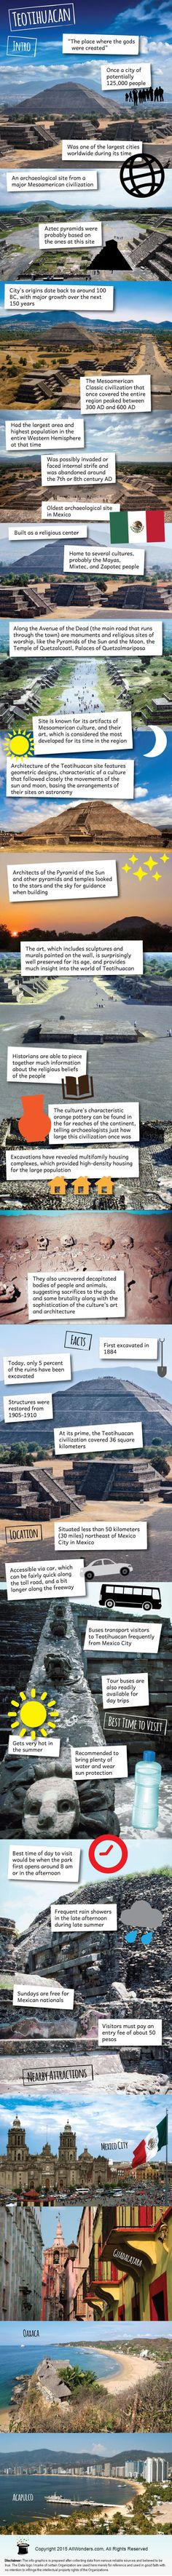 Teotihuacan Infographic showing Facts and Information about Teotihuacan in Mexico. Find out about its location, best time to visit, nearby attractions and more.